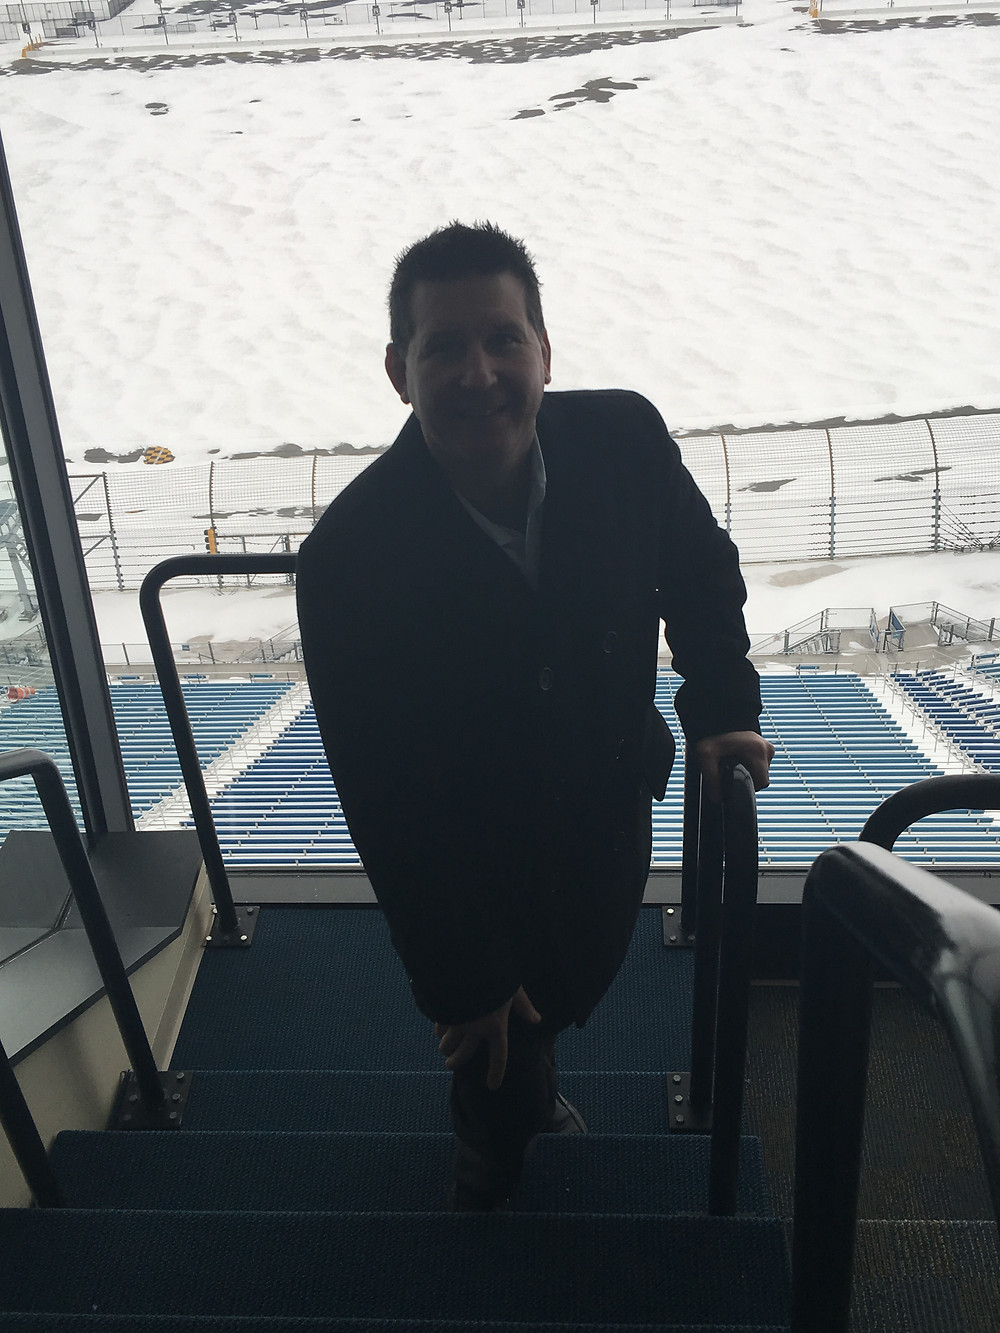 This was my first day on the job at Chicagoland Speedway on February 16, 2016. Standing in the press box at the speedway, which would be my new home, was such an amazing feeling.